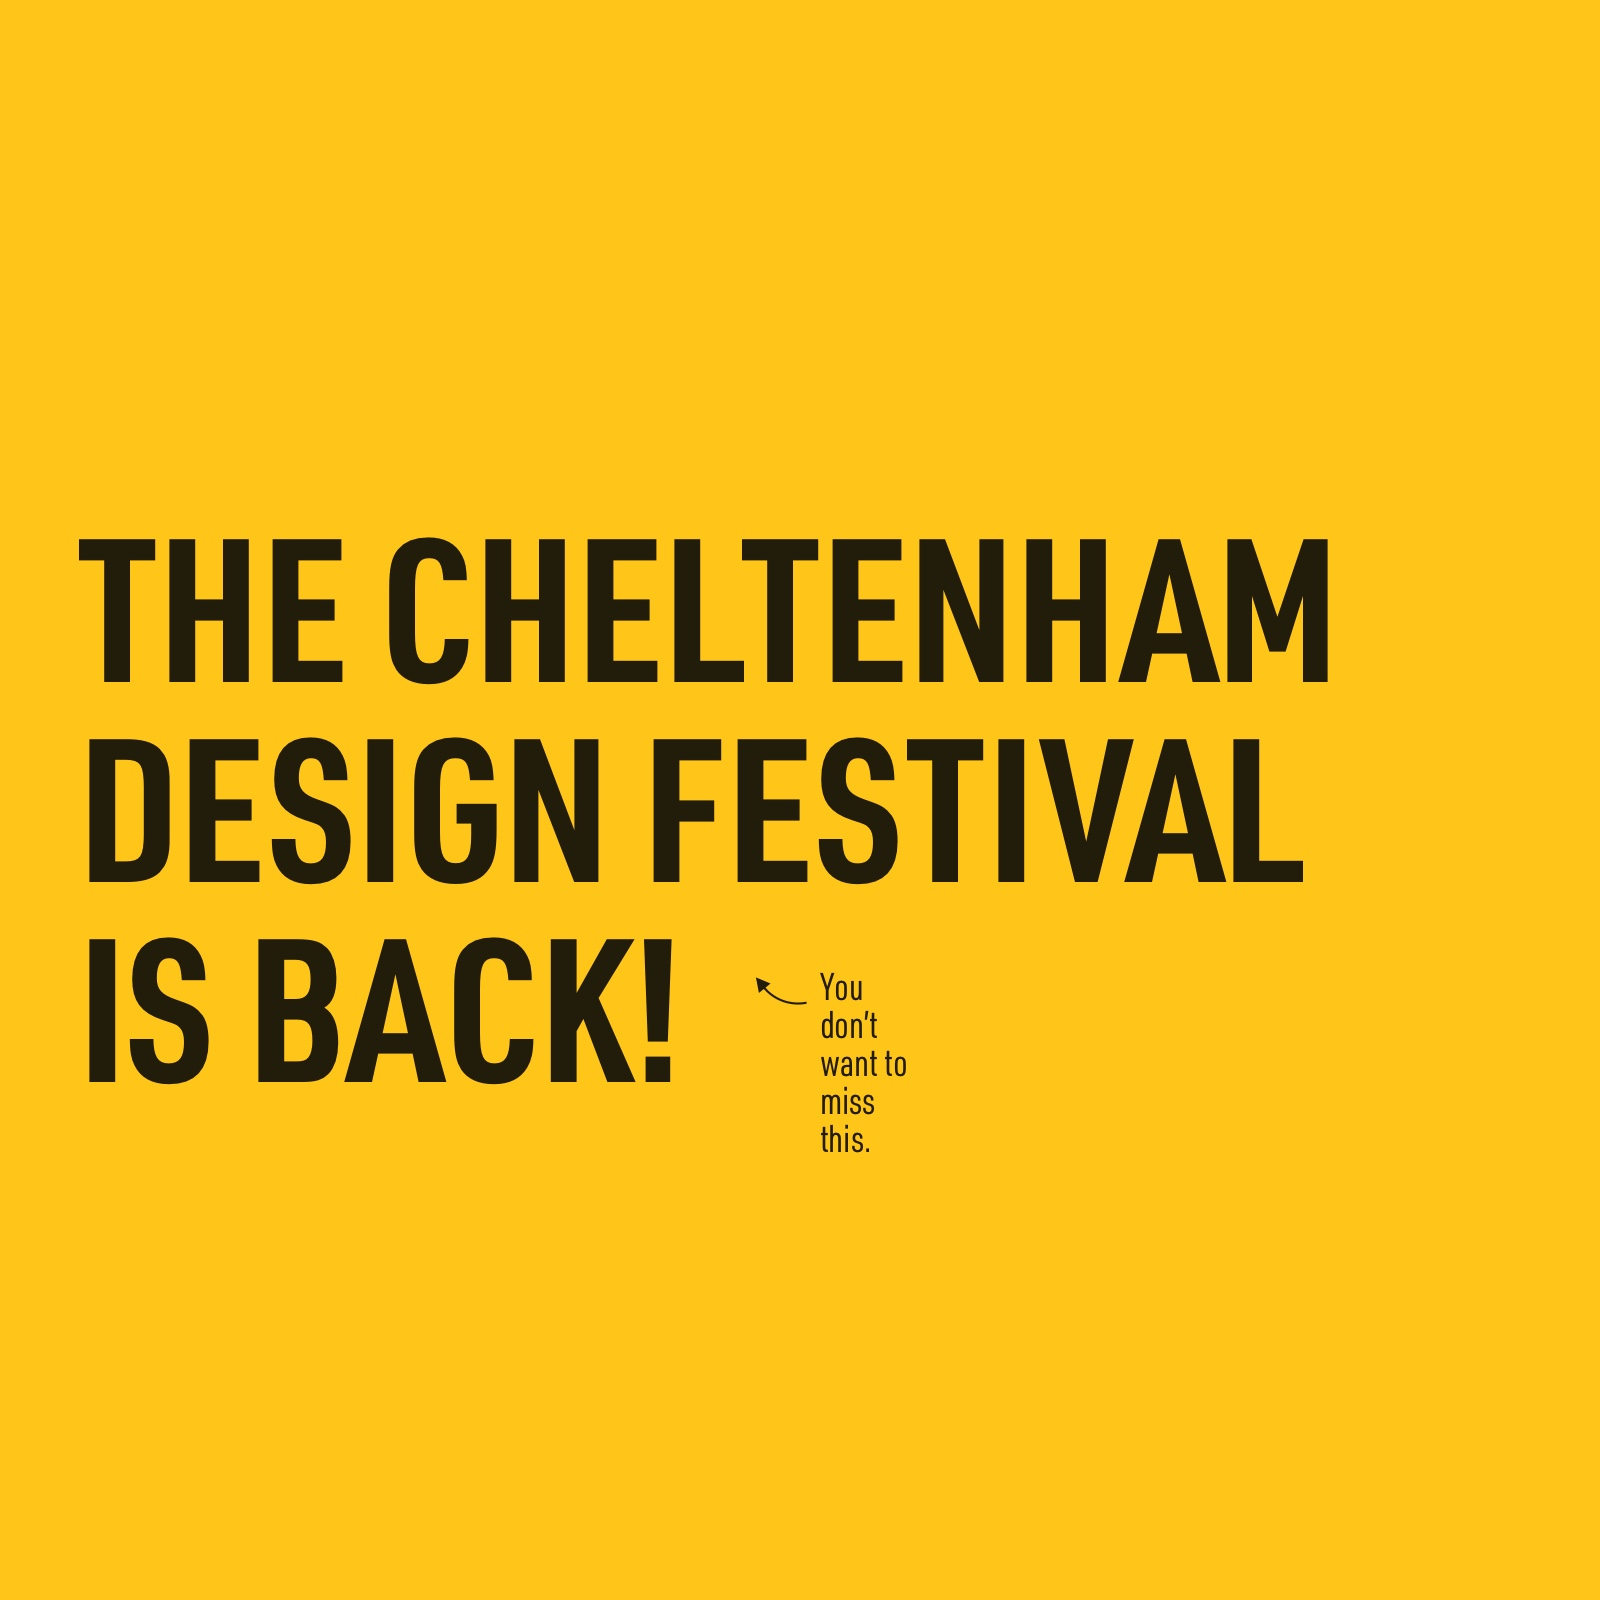 Cheltenham design festival is back